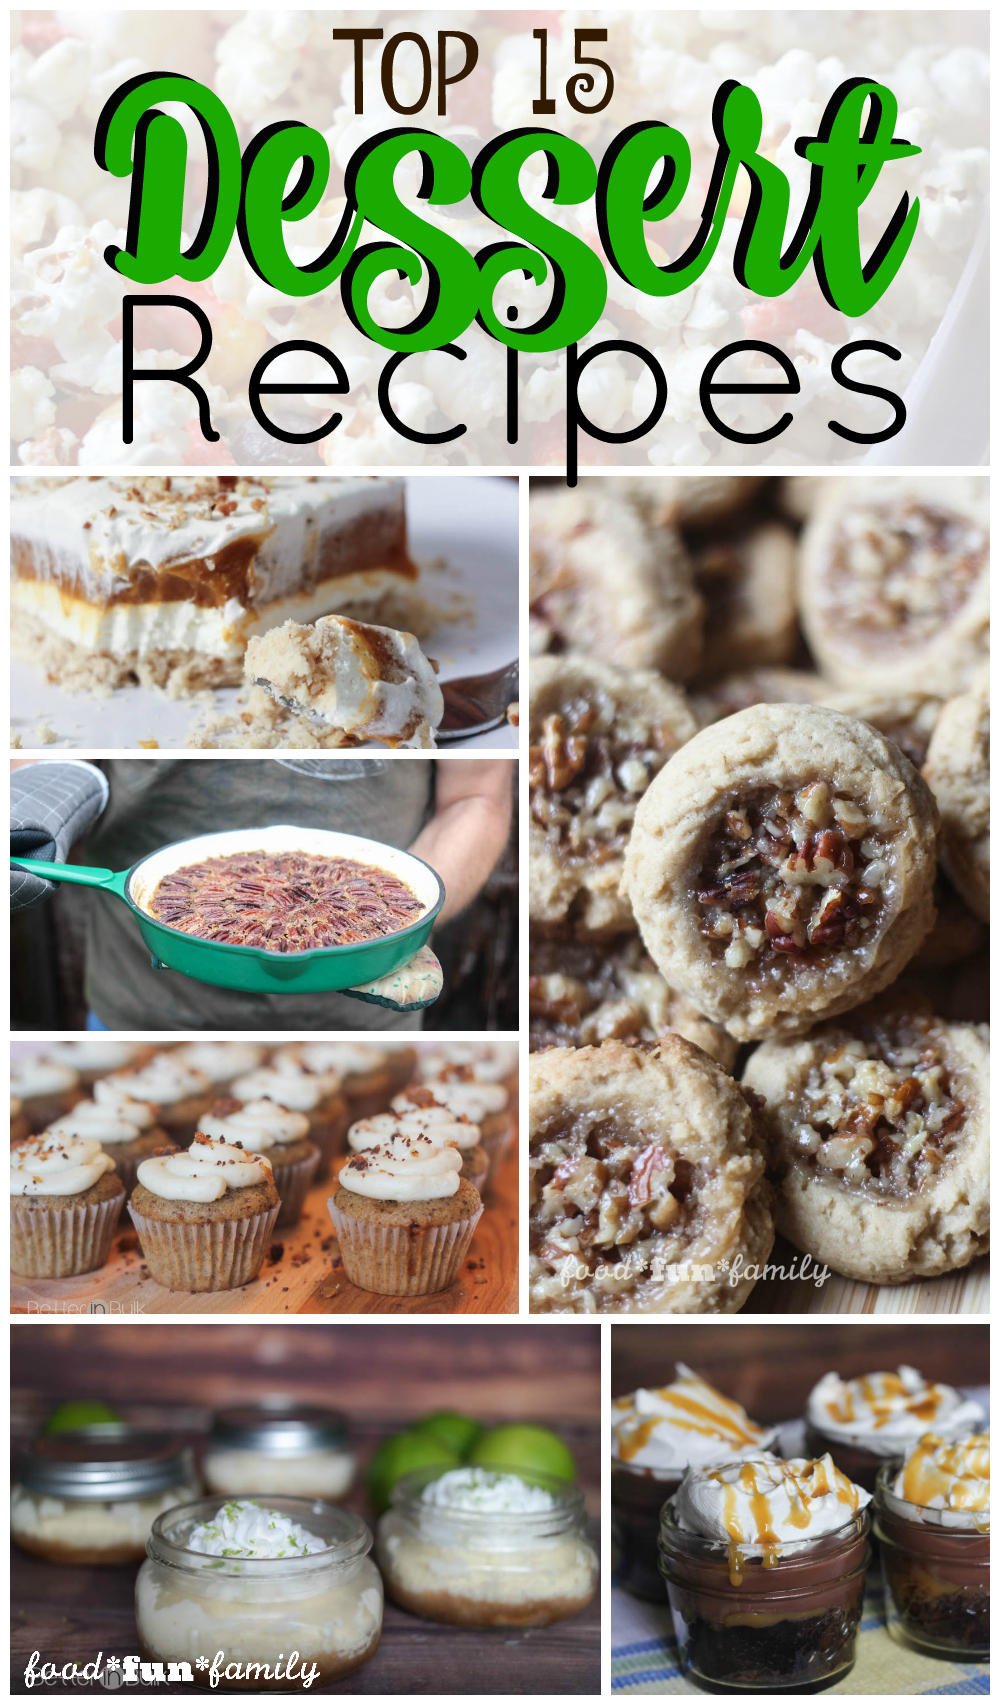 Top 15 Dessert Recipes of 2015 from Food Fun Family